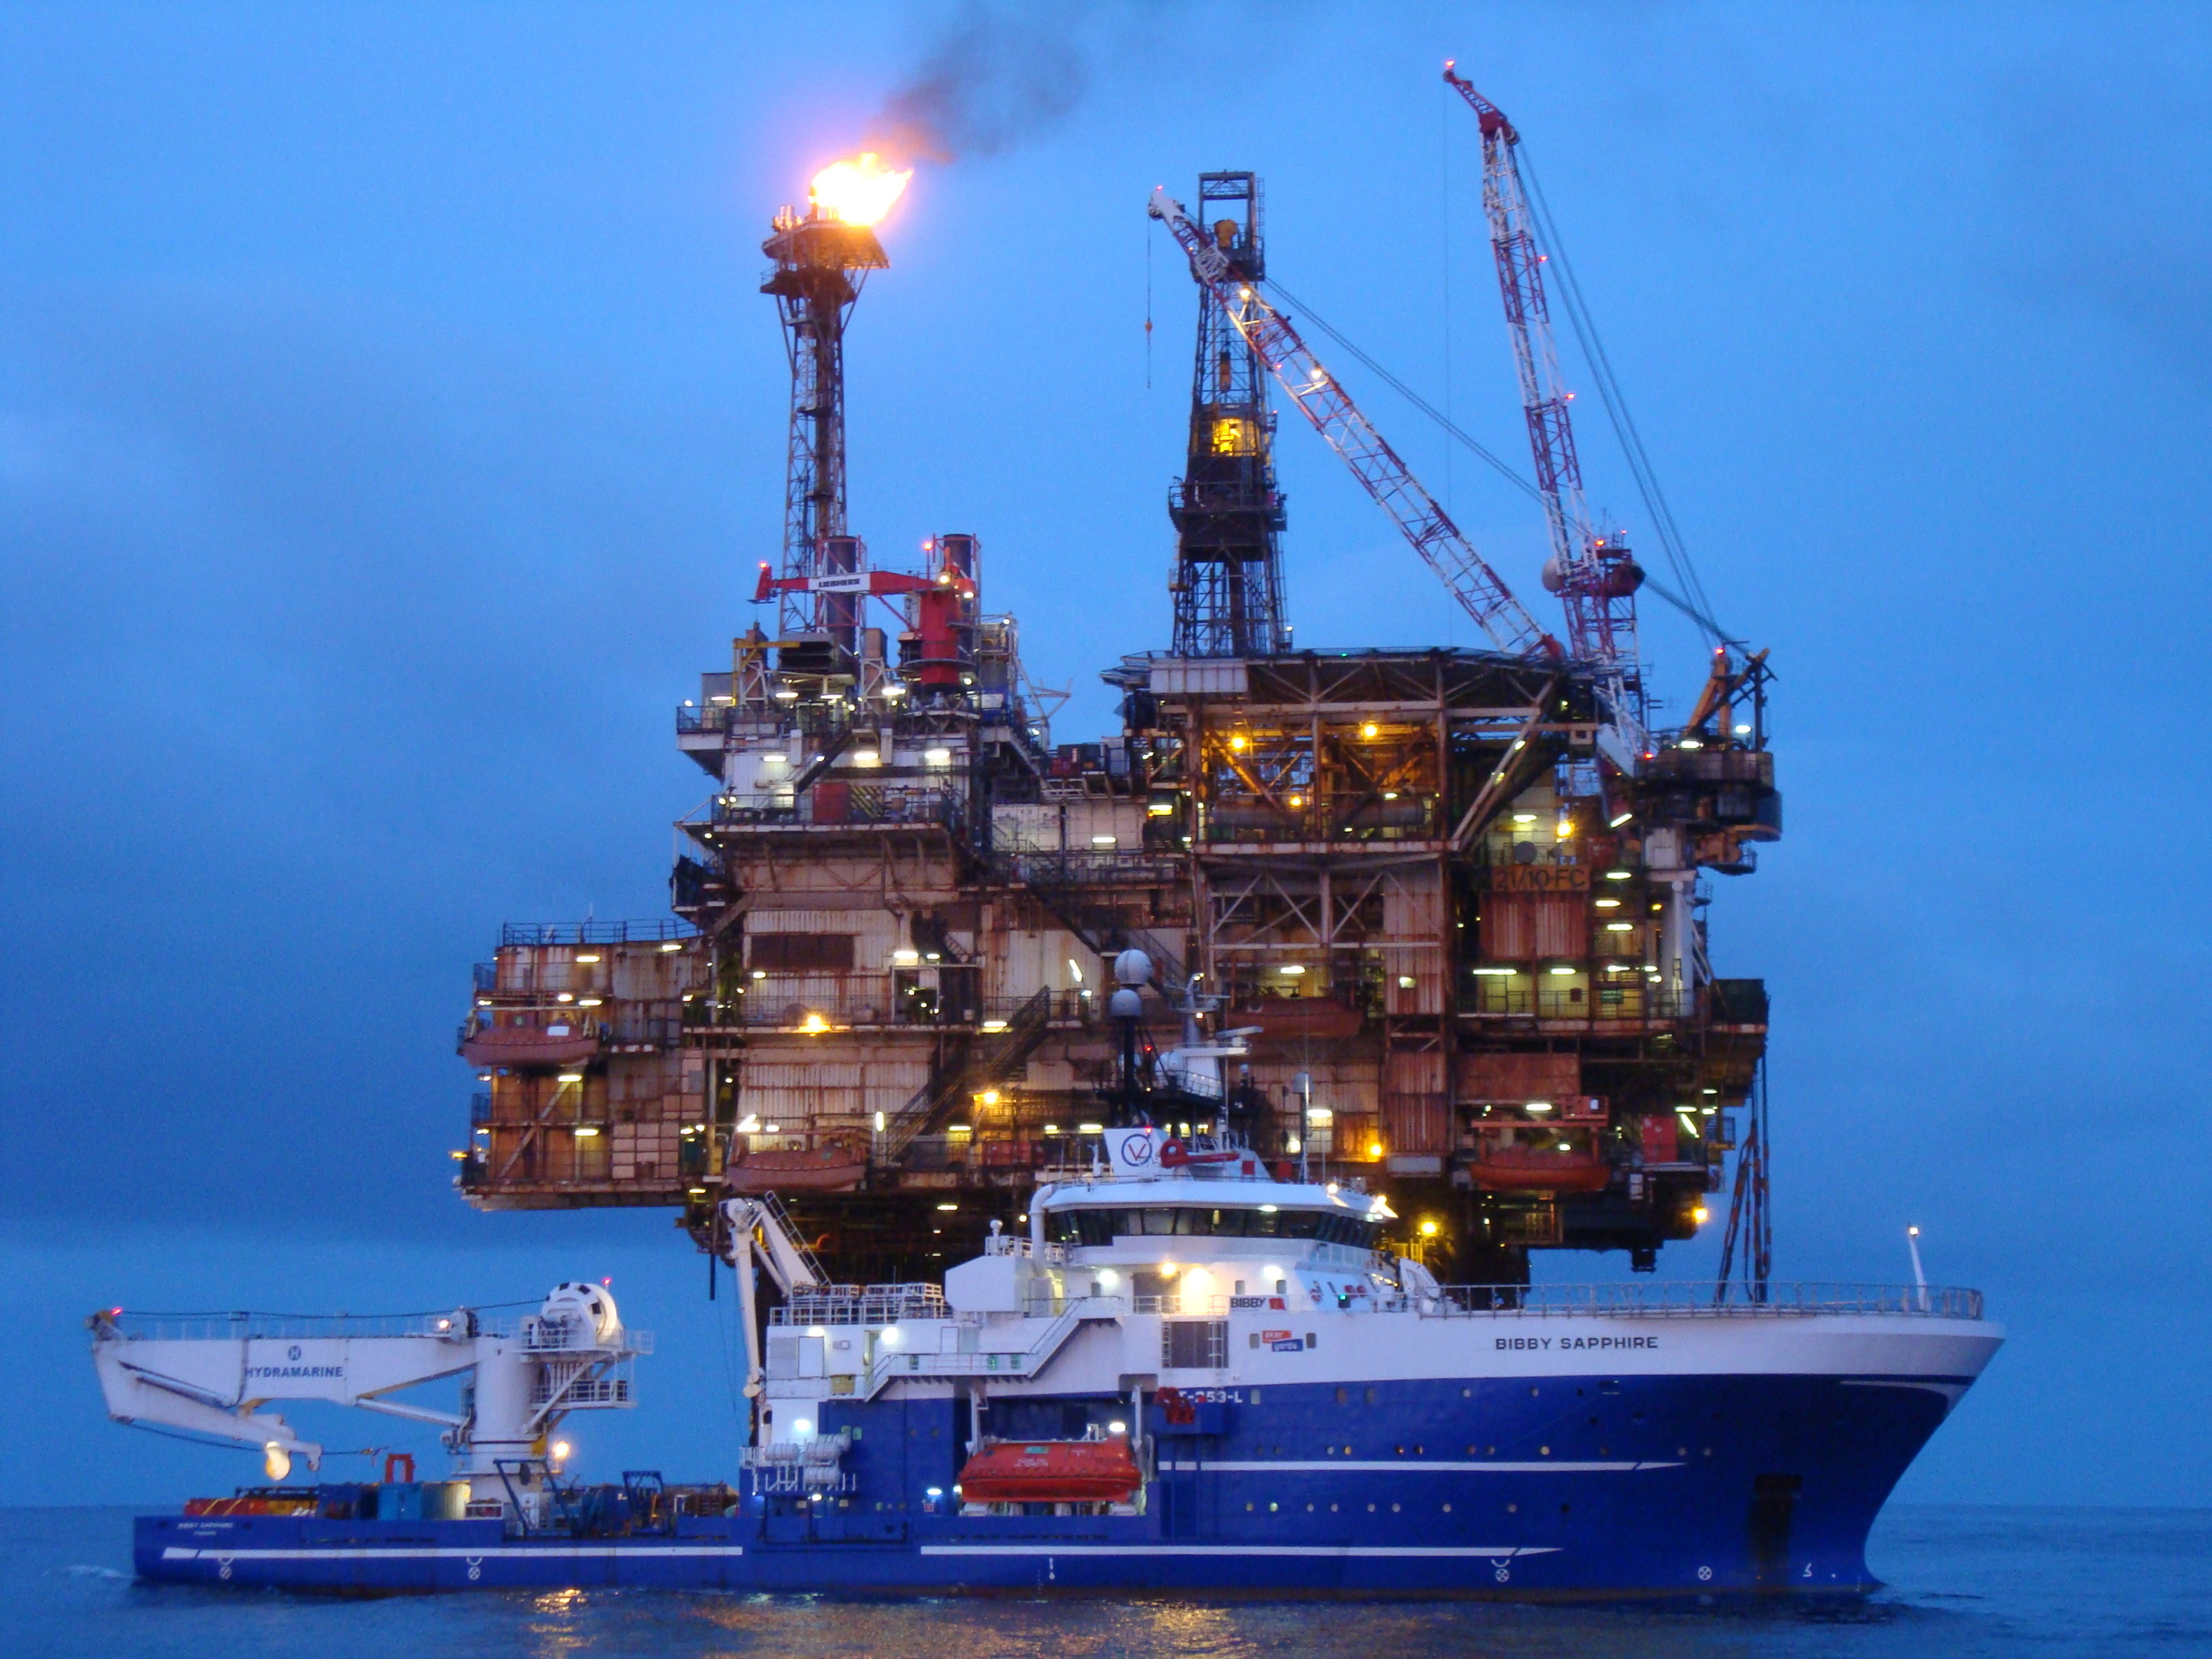 Bibby Sapphire, owned by Bibby Offshore